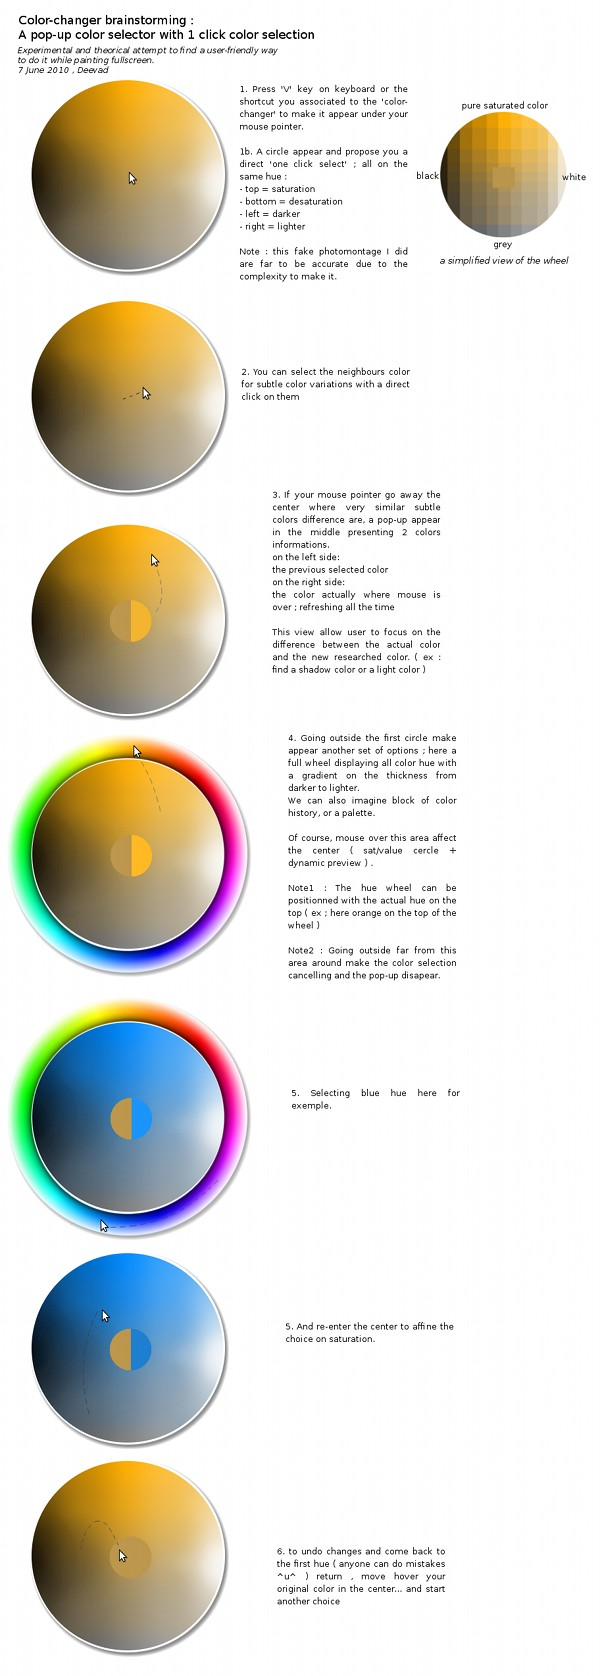 Color changer research